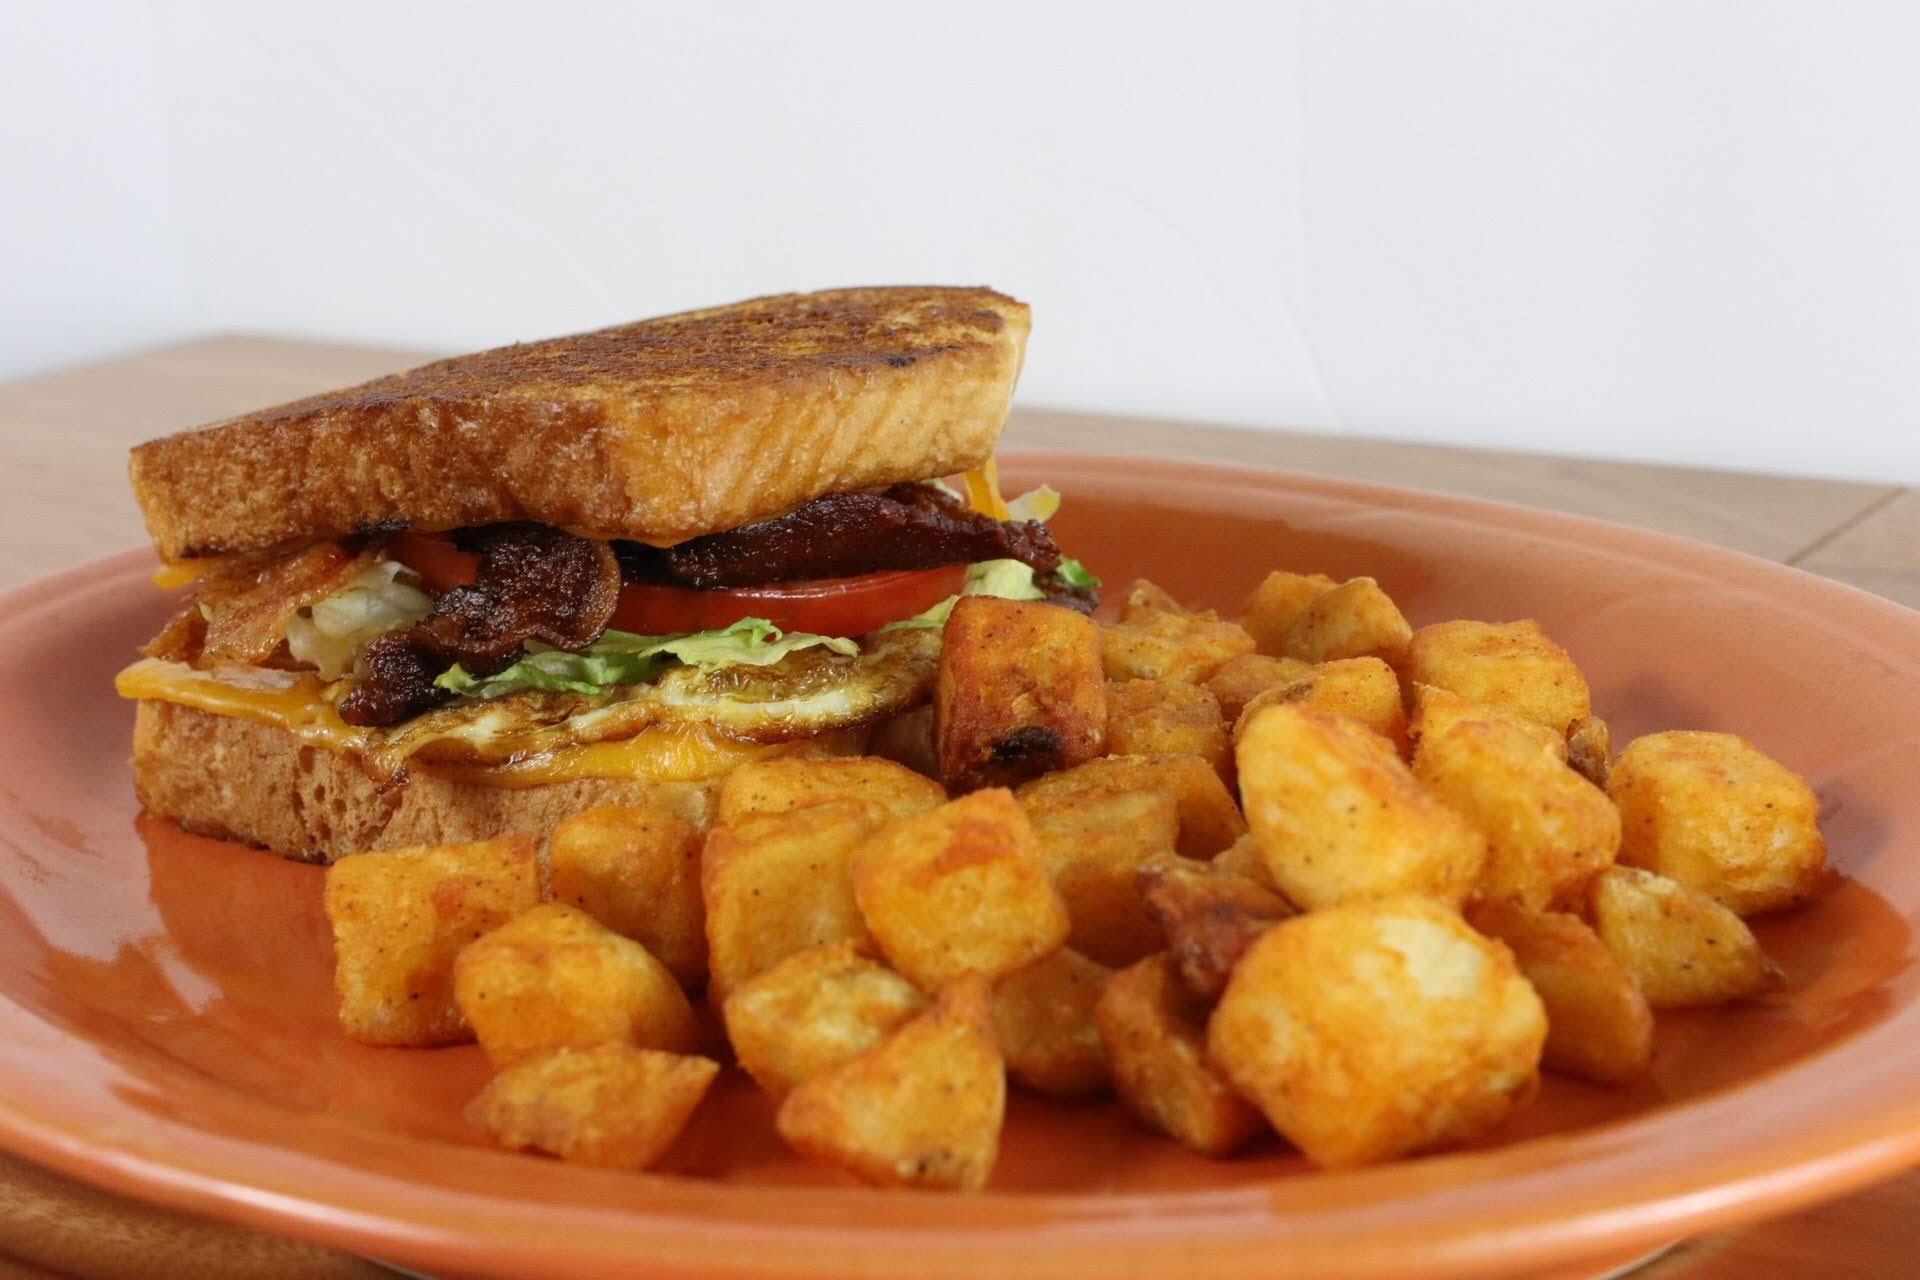 Breakfast sandwich on Texas toast with breakfast potatoes